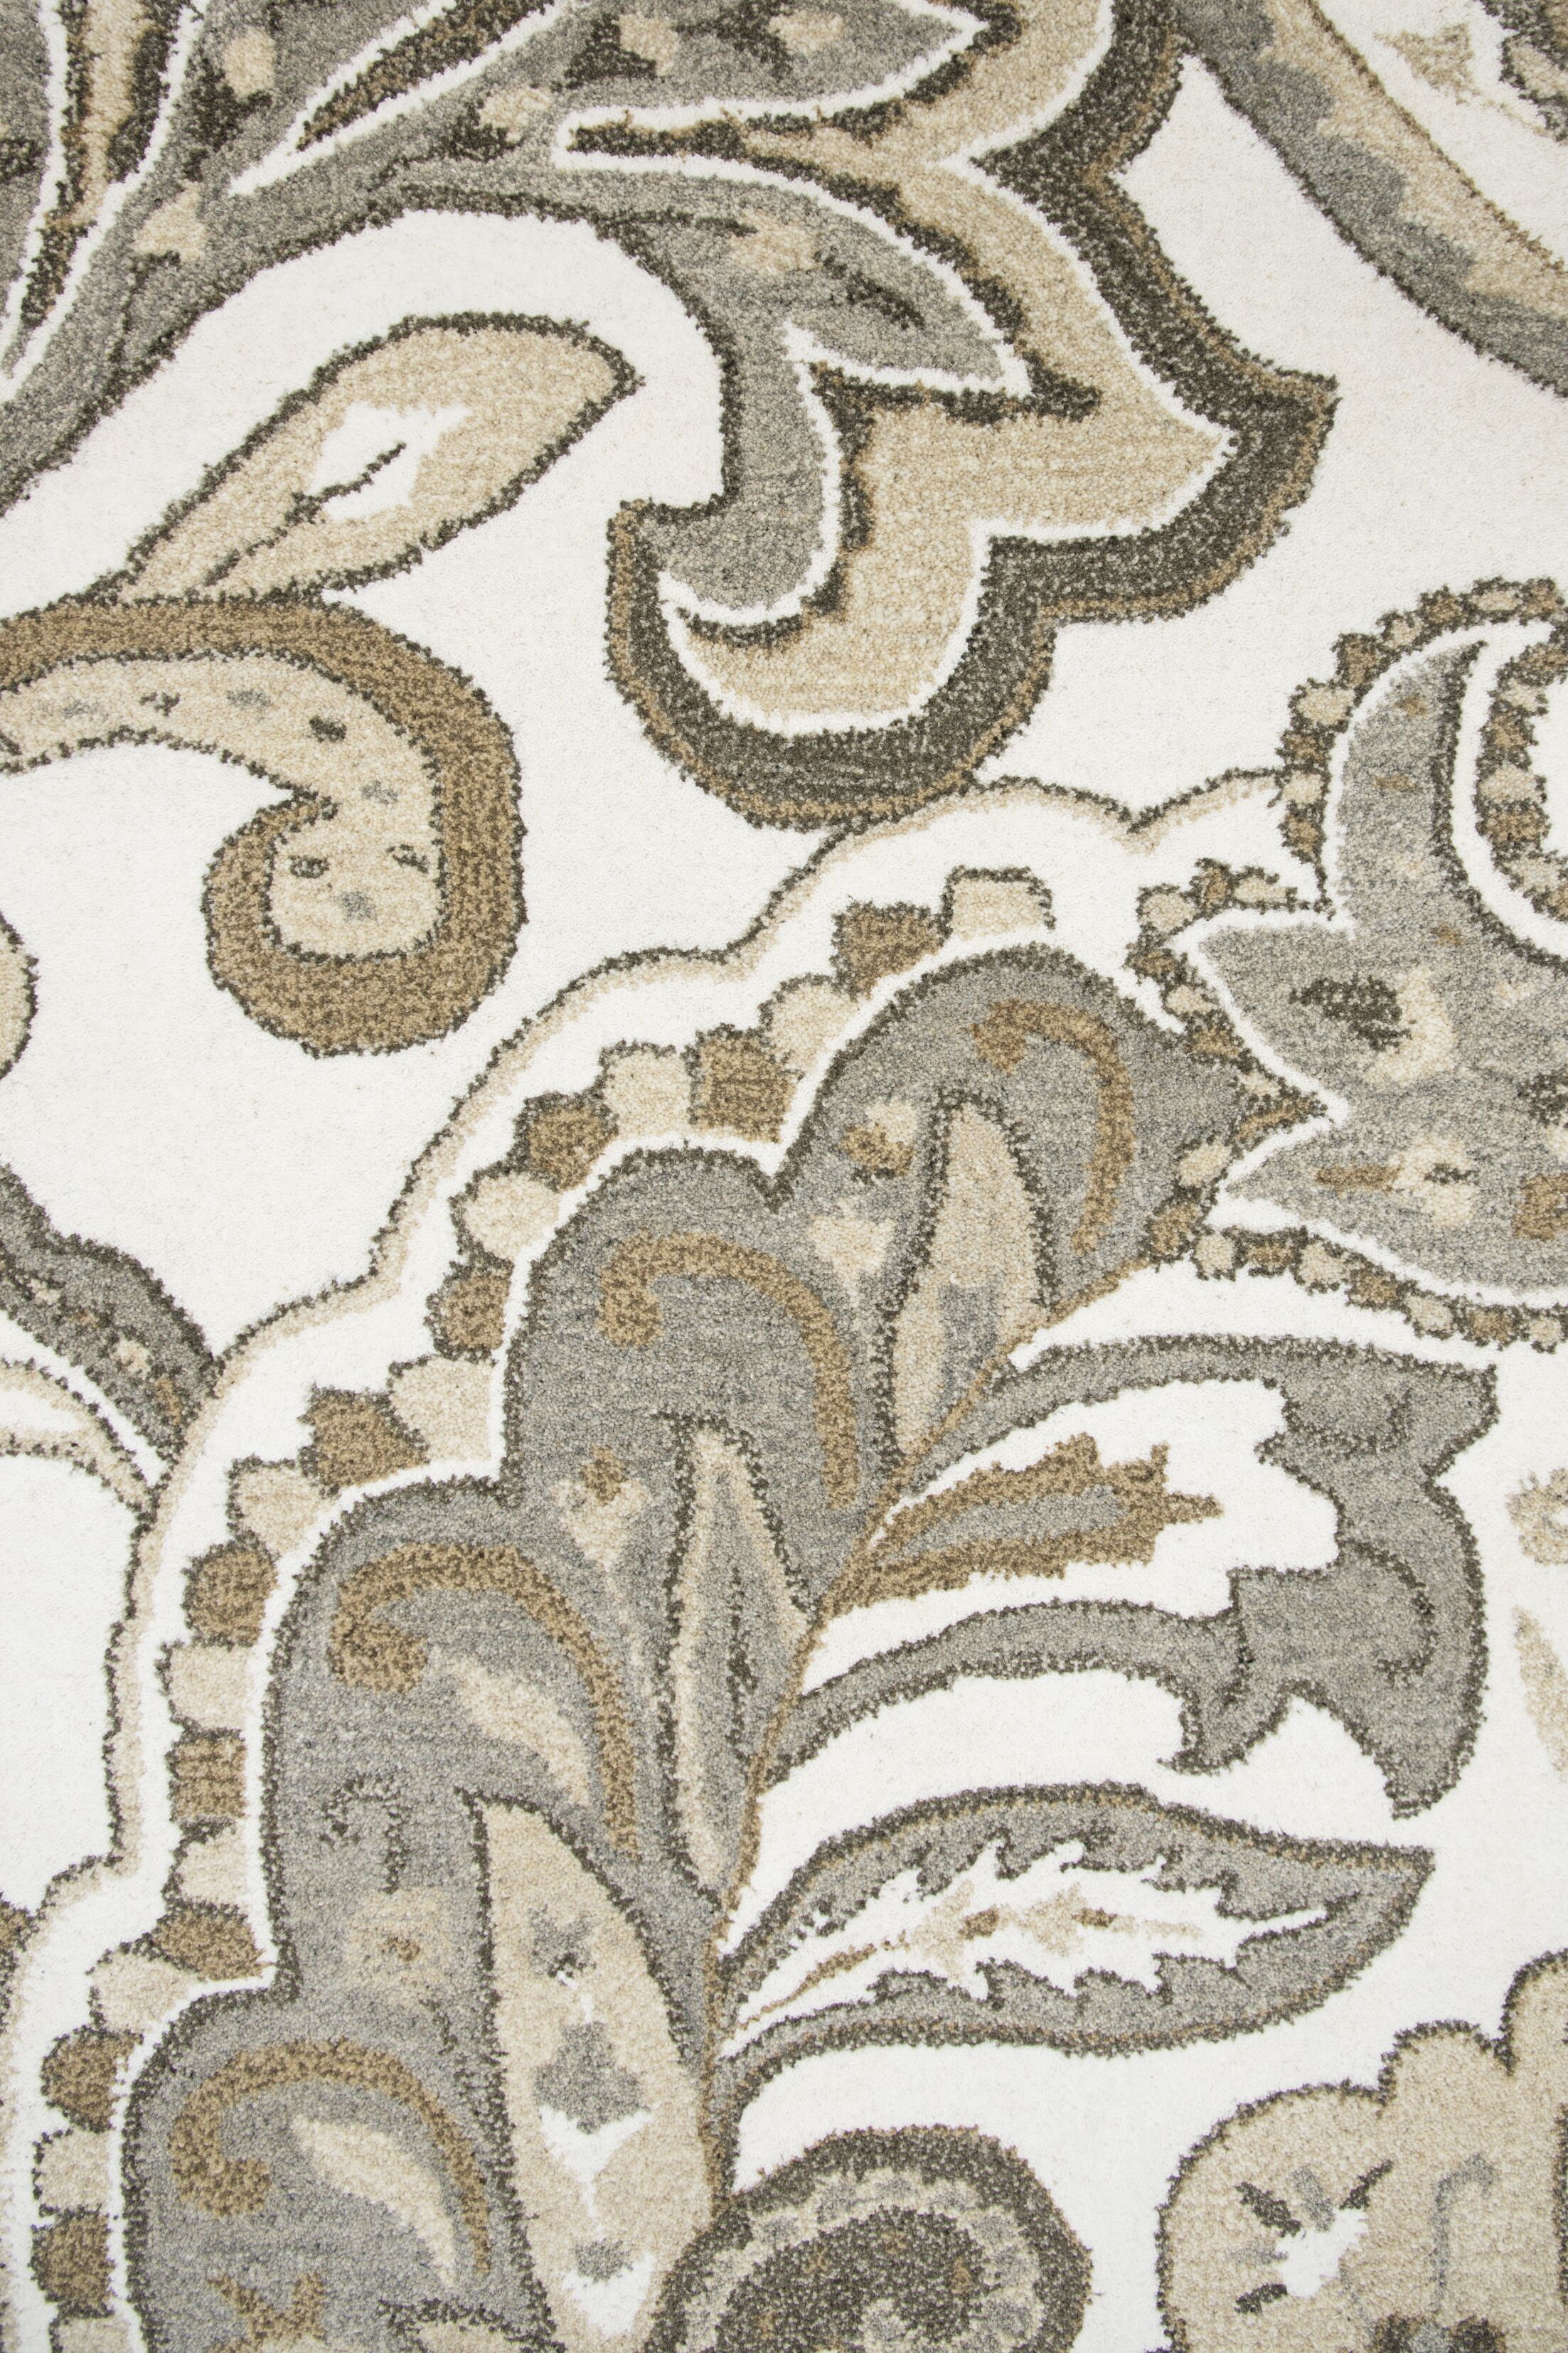 Allerton Hand-Tufted Beige/Gray Area Rug Rug Size: Rectangle 5' x 8'